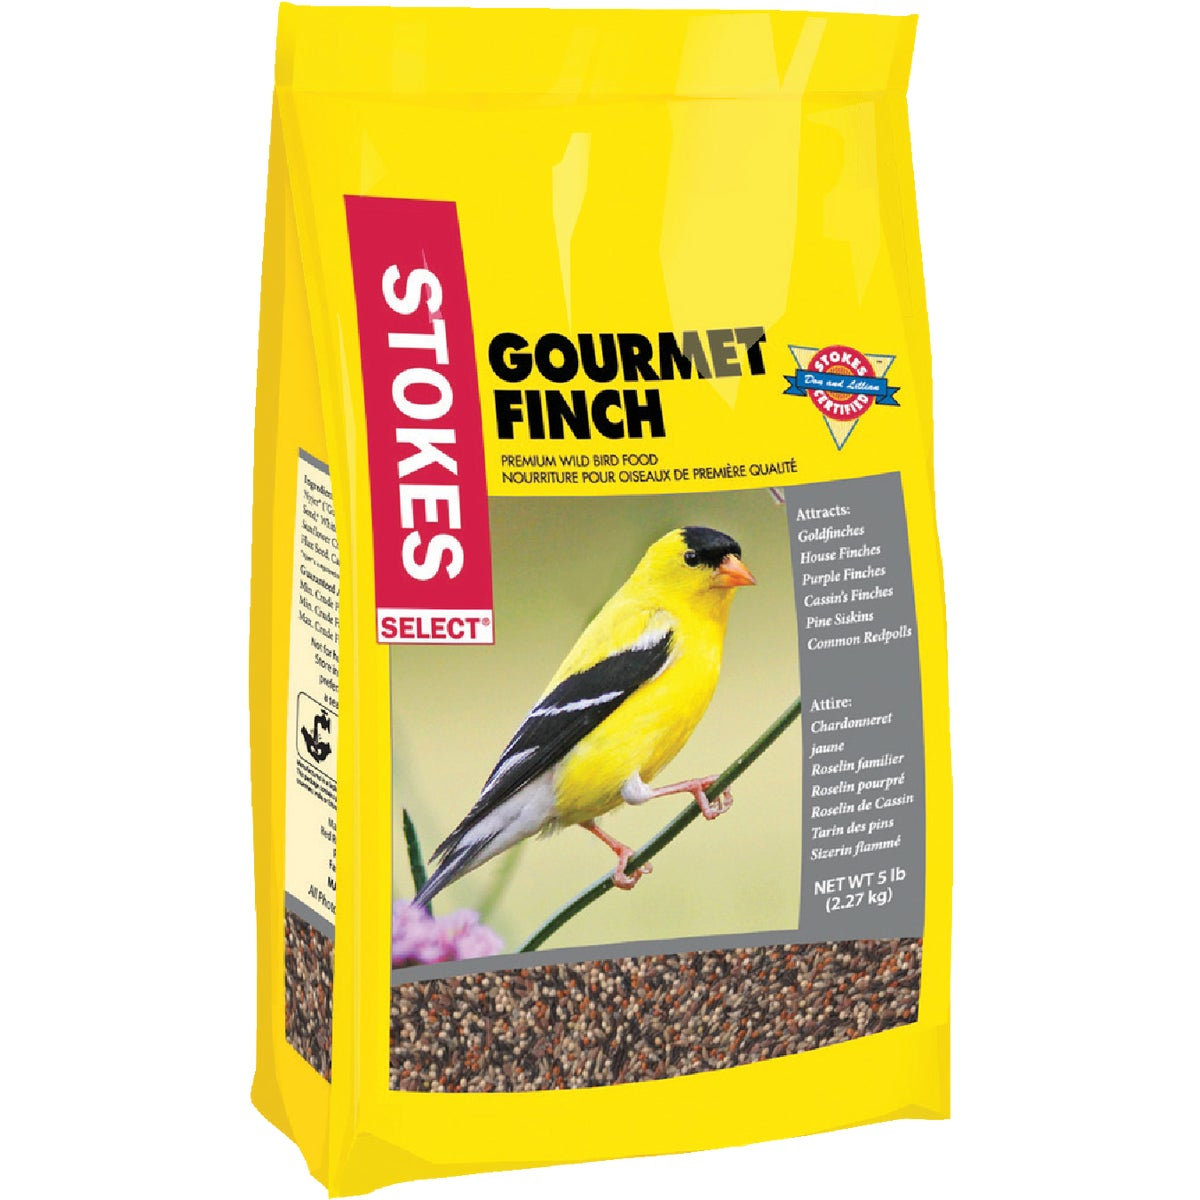 5LB GOURMET FINCH SEED - 9268 by Red River Commod